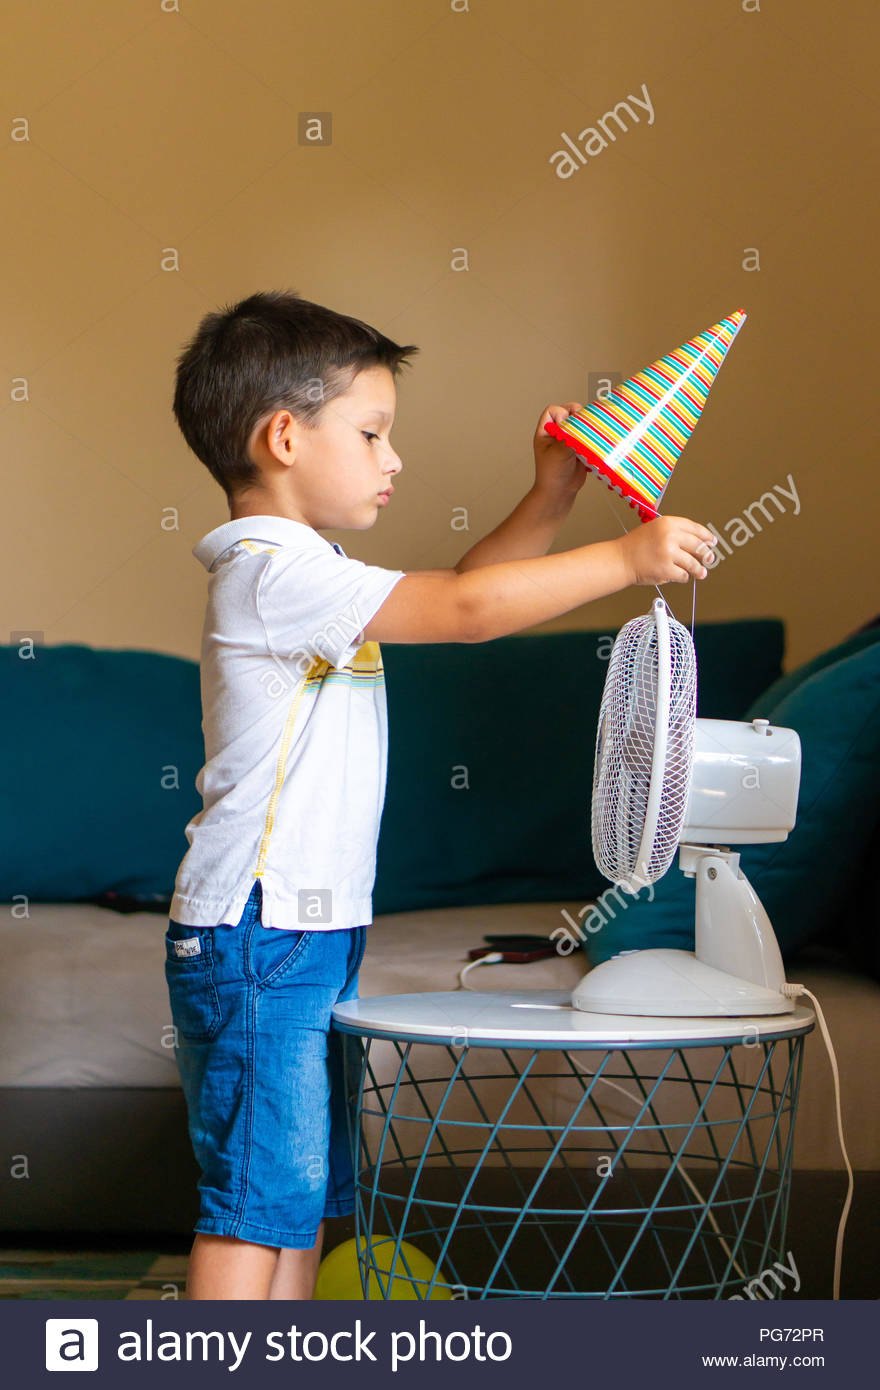 c836d9ab Young boy trying to put a birthday paper hat on a ventilator in a room